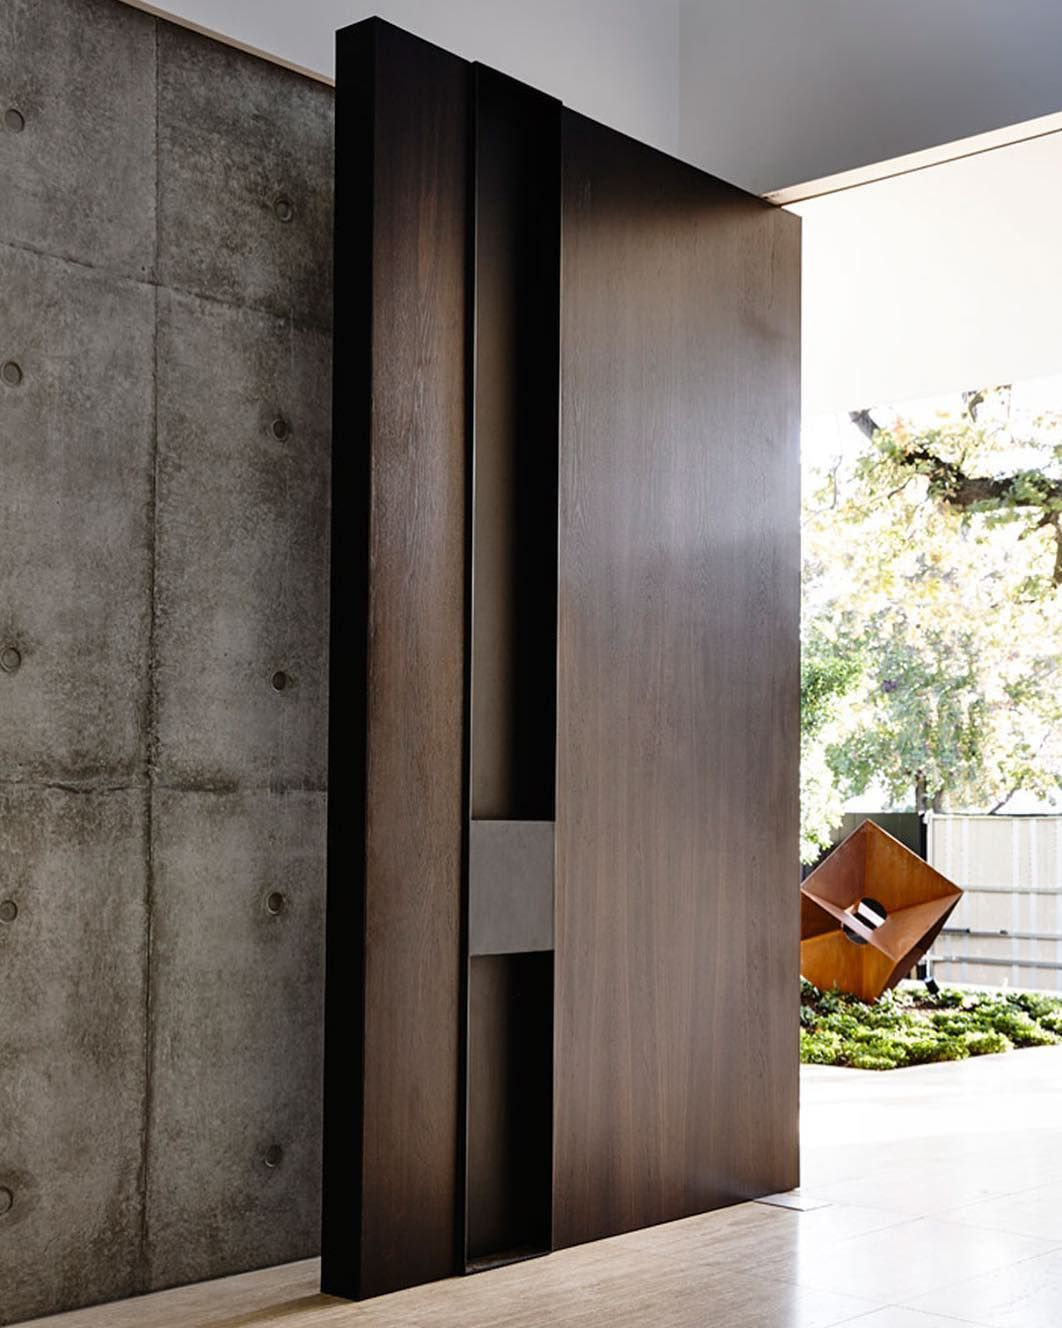 The Grand Entrance Of Kooyong House Designed By Workroom Design Built By Agushipl Photographed Door Design Modern Main Door Design Entrance Door Design